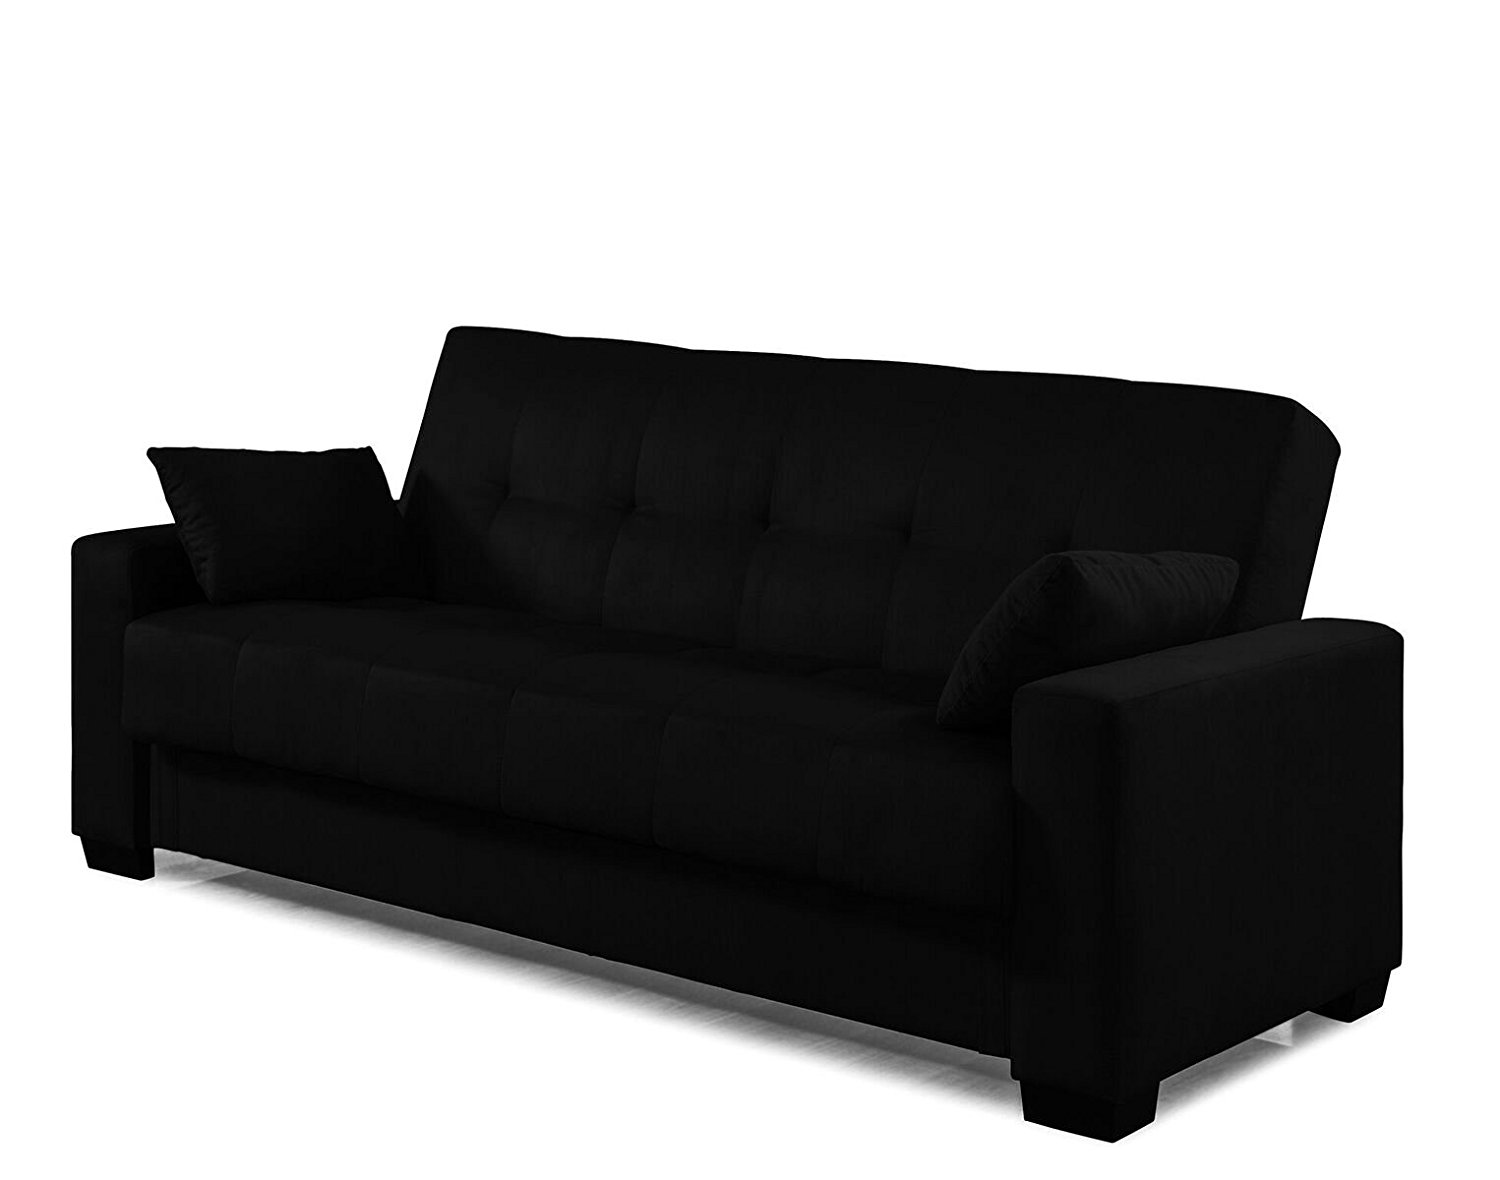 quality sofas for less best way to clean fabric sofa arms microfiber sleeper bed and lounger with storage black